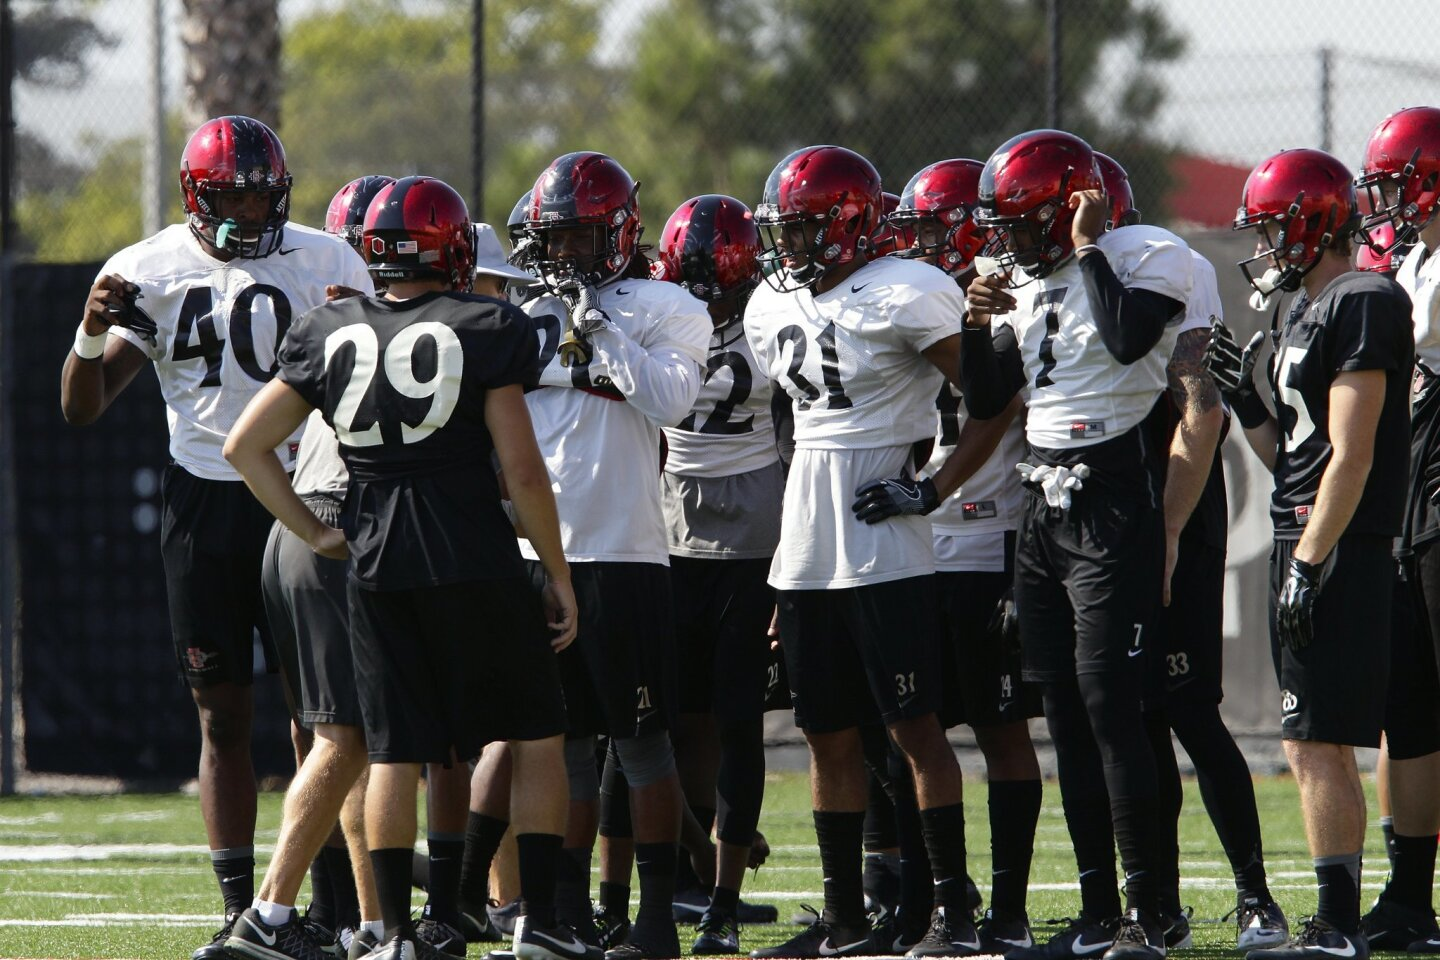 Aztecs Football practice August 30, 2016